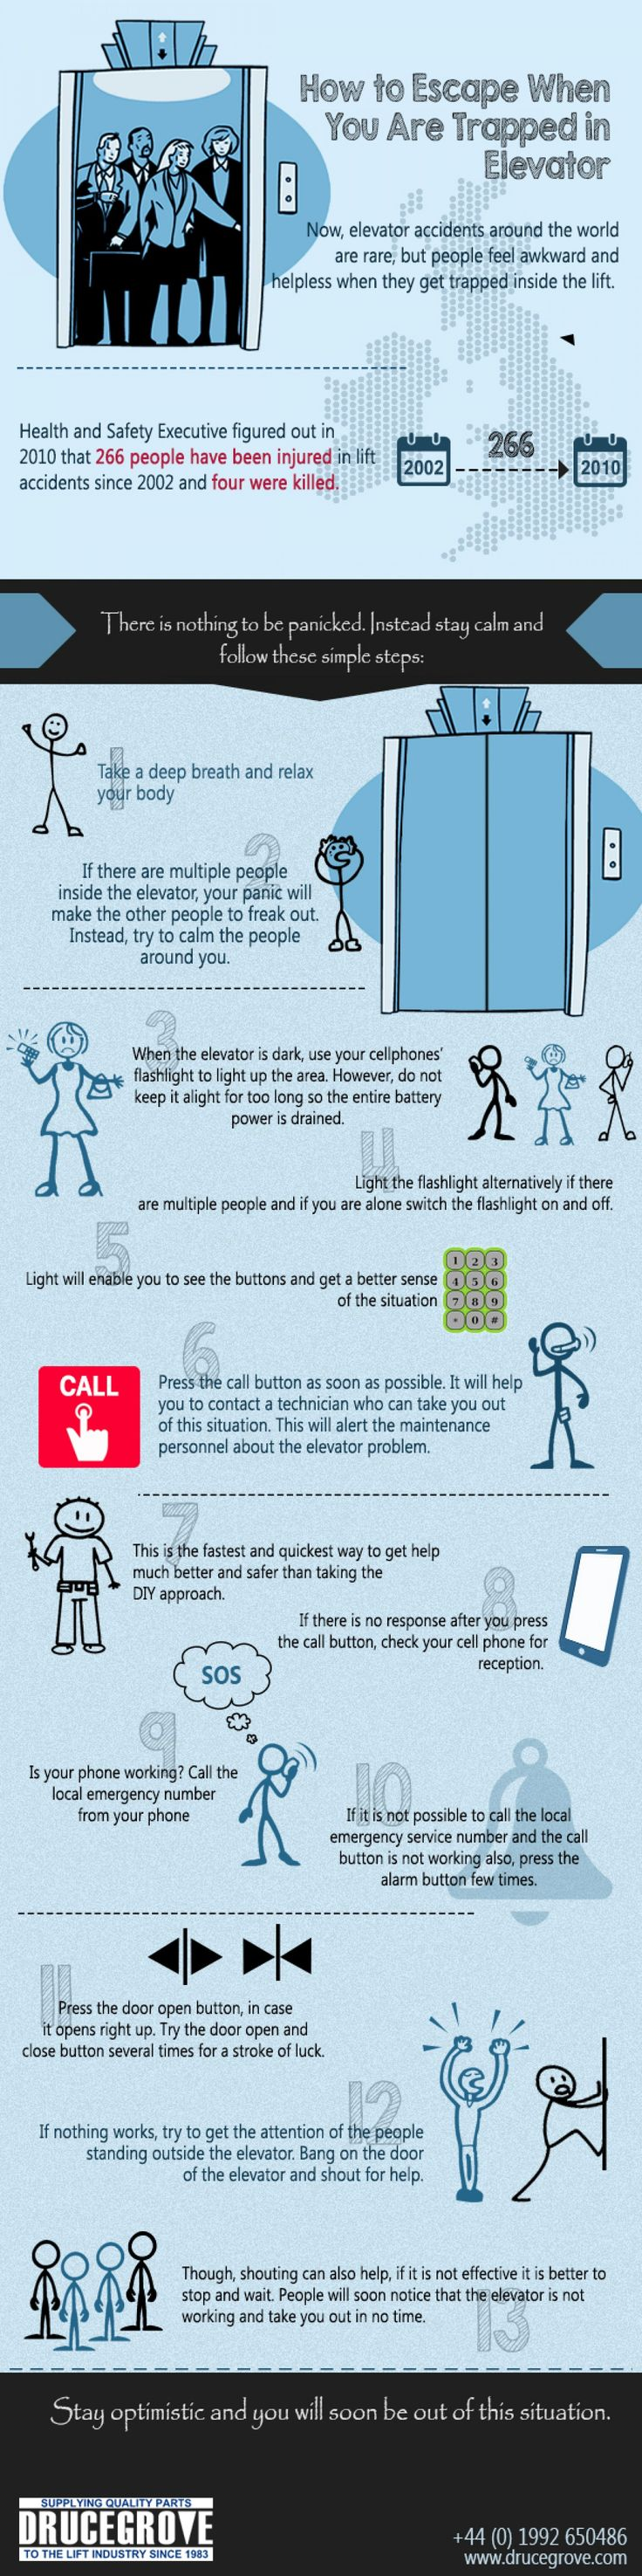 104 best FYI info images on Pinterest | Info graphics, Infographic ...